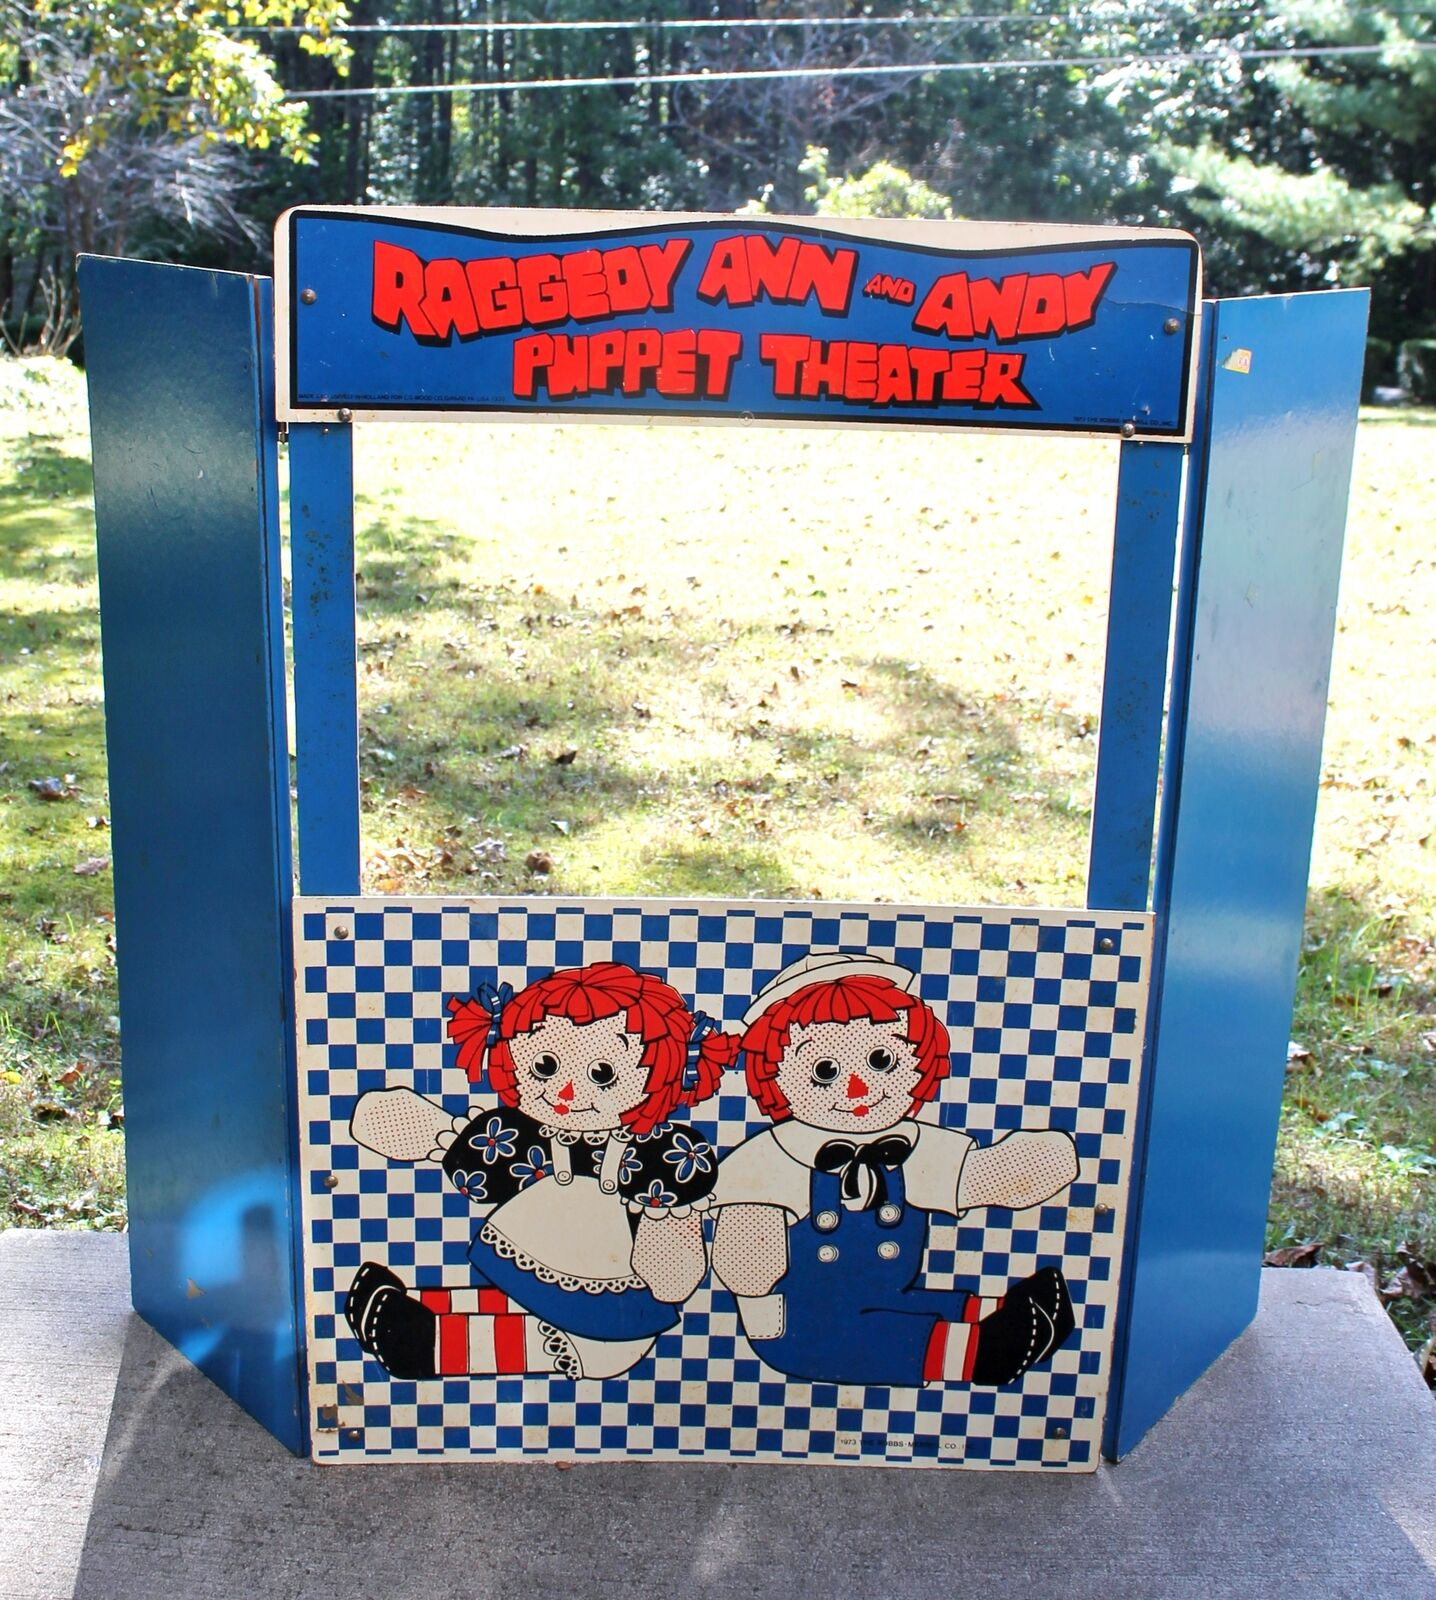 Vintage 1973 Raggedy Ann & Andy Puppet Theater Wood Folding Standup Playset